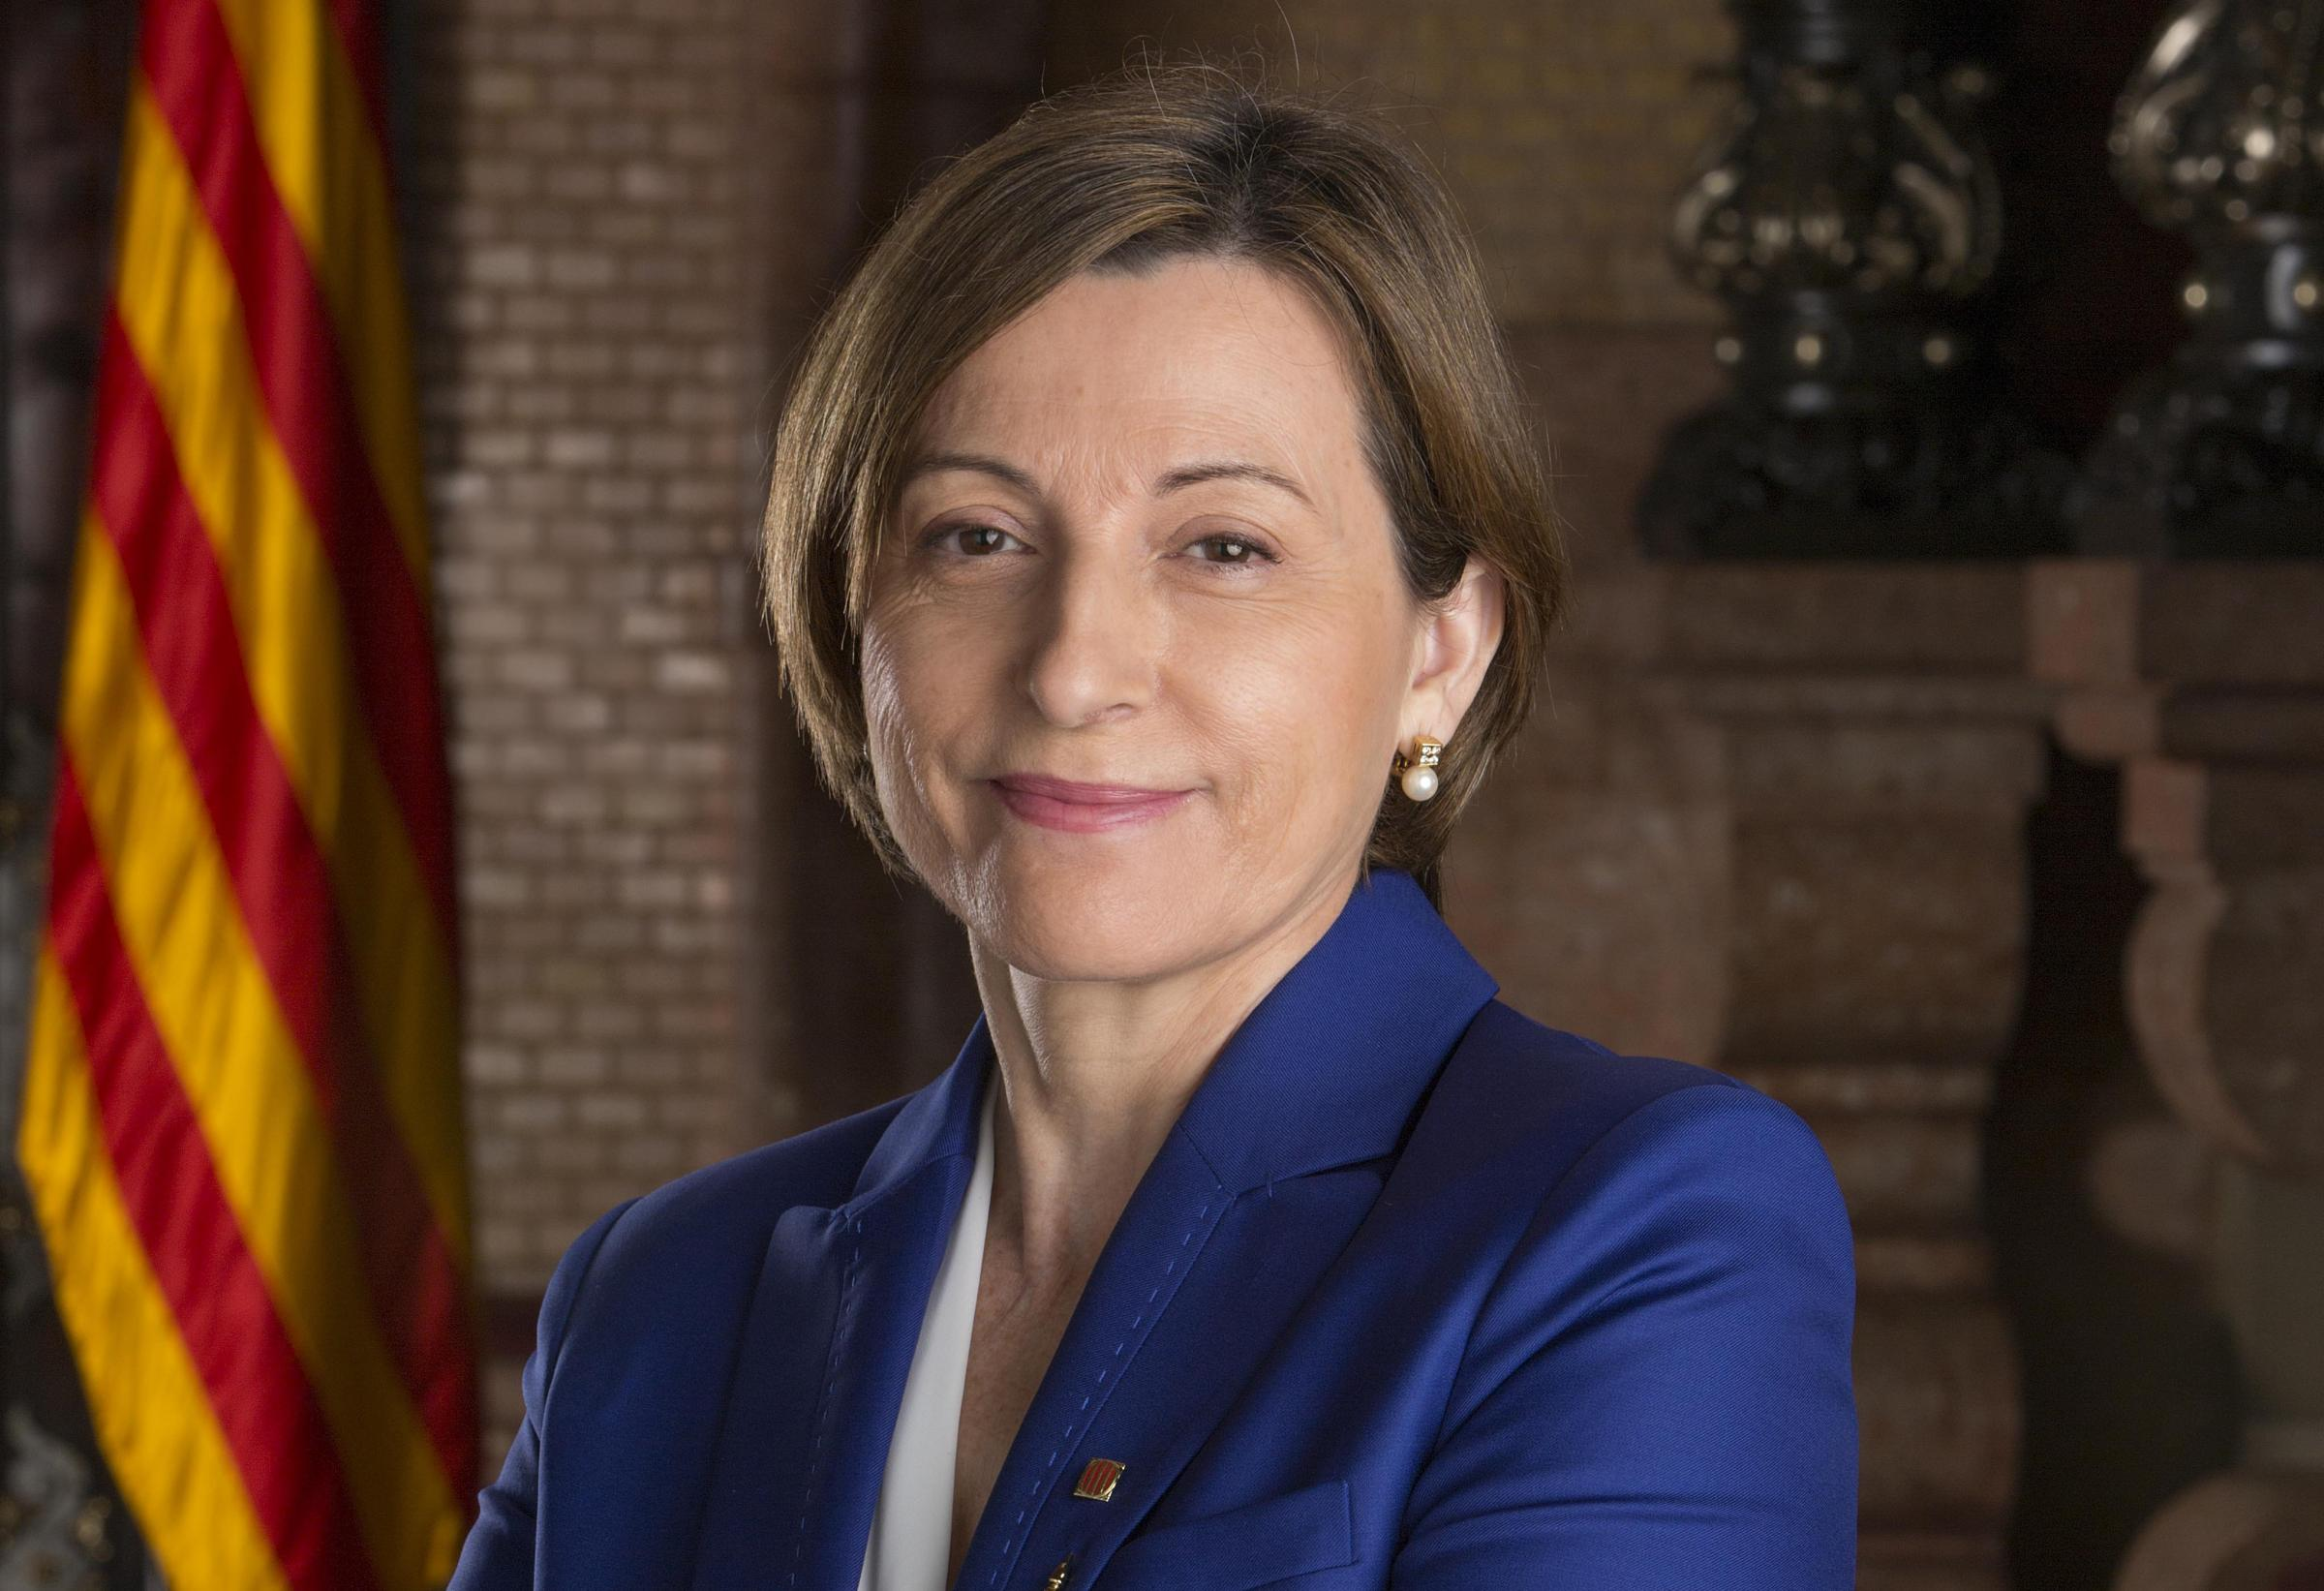 Carme Forcadell was imprisoned for allowing a debate and vote on independence